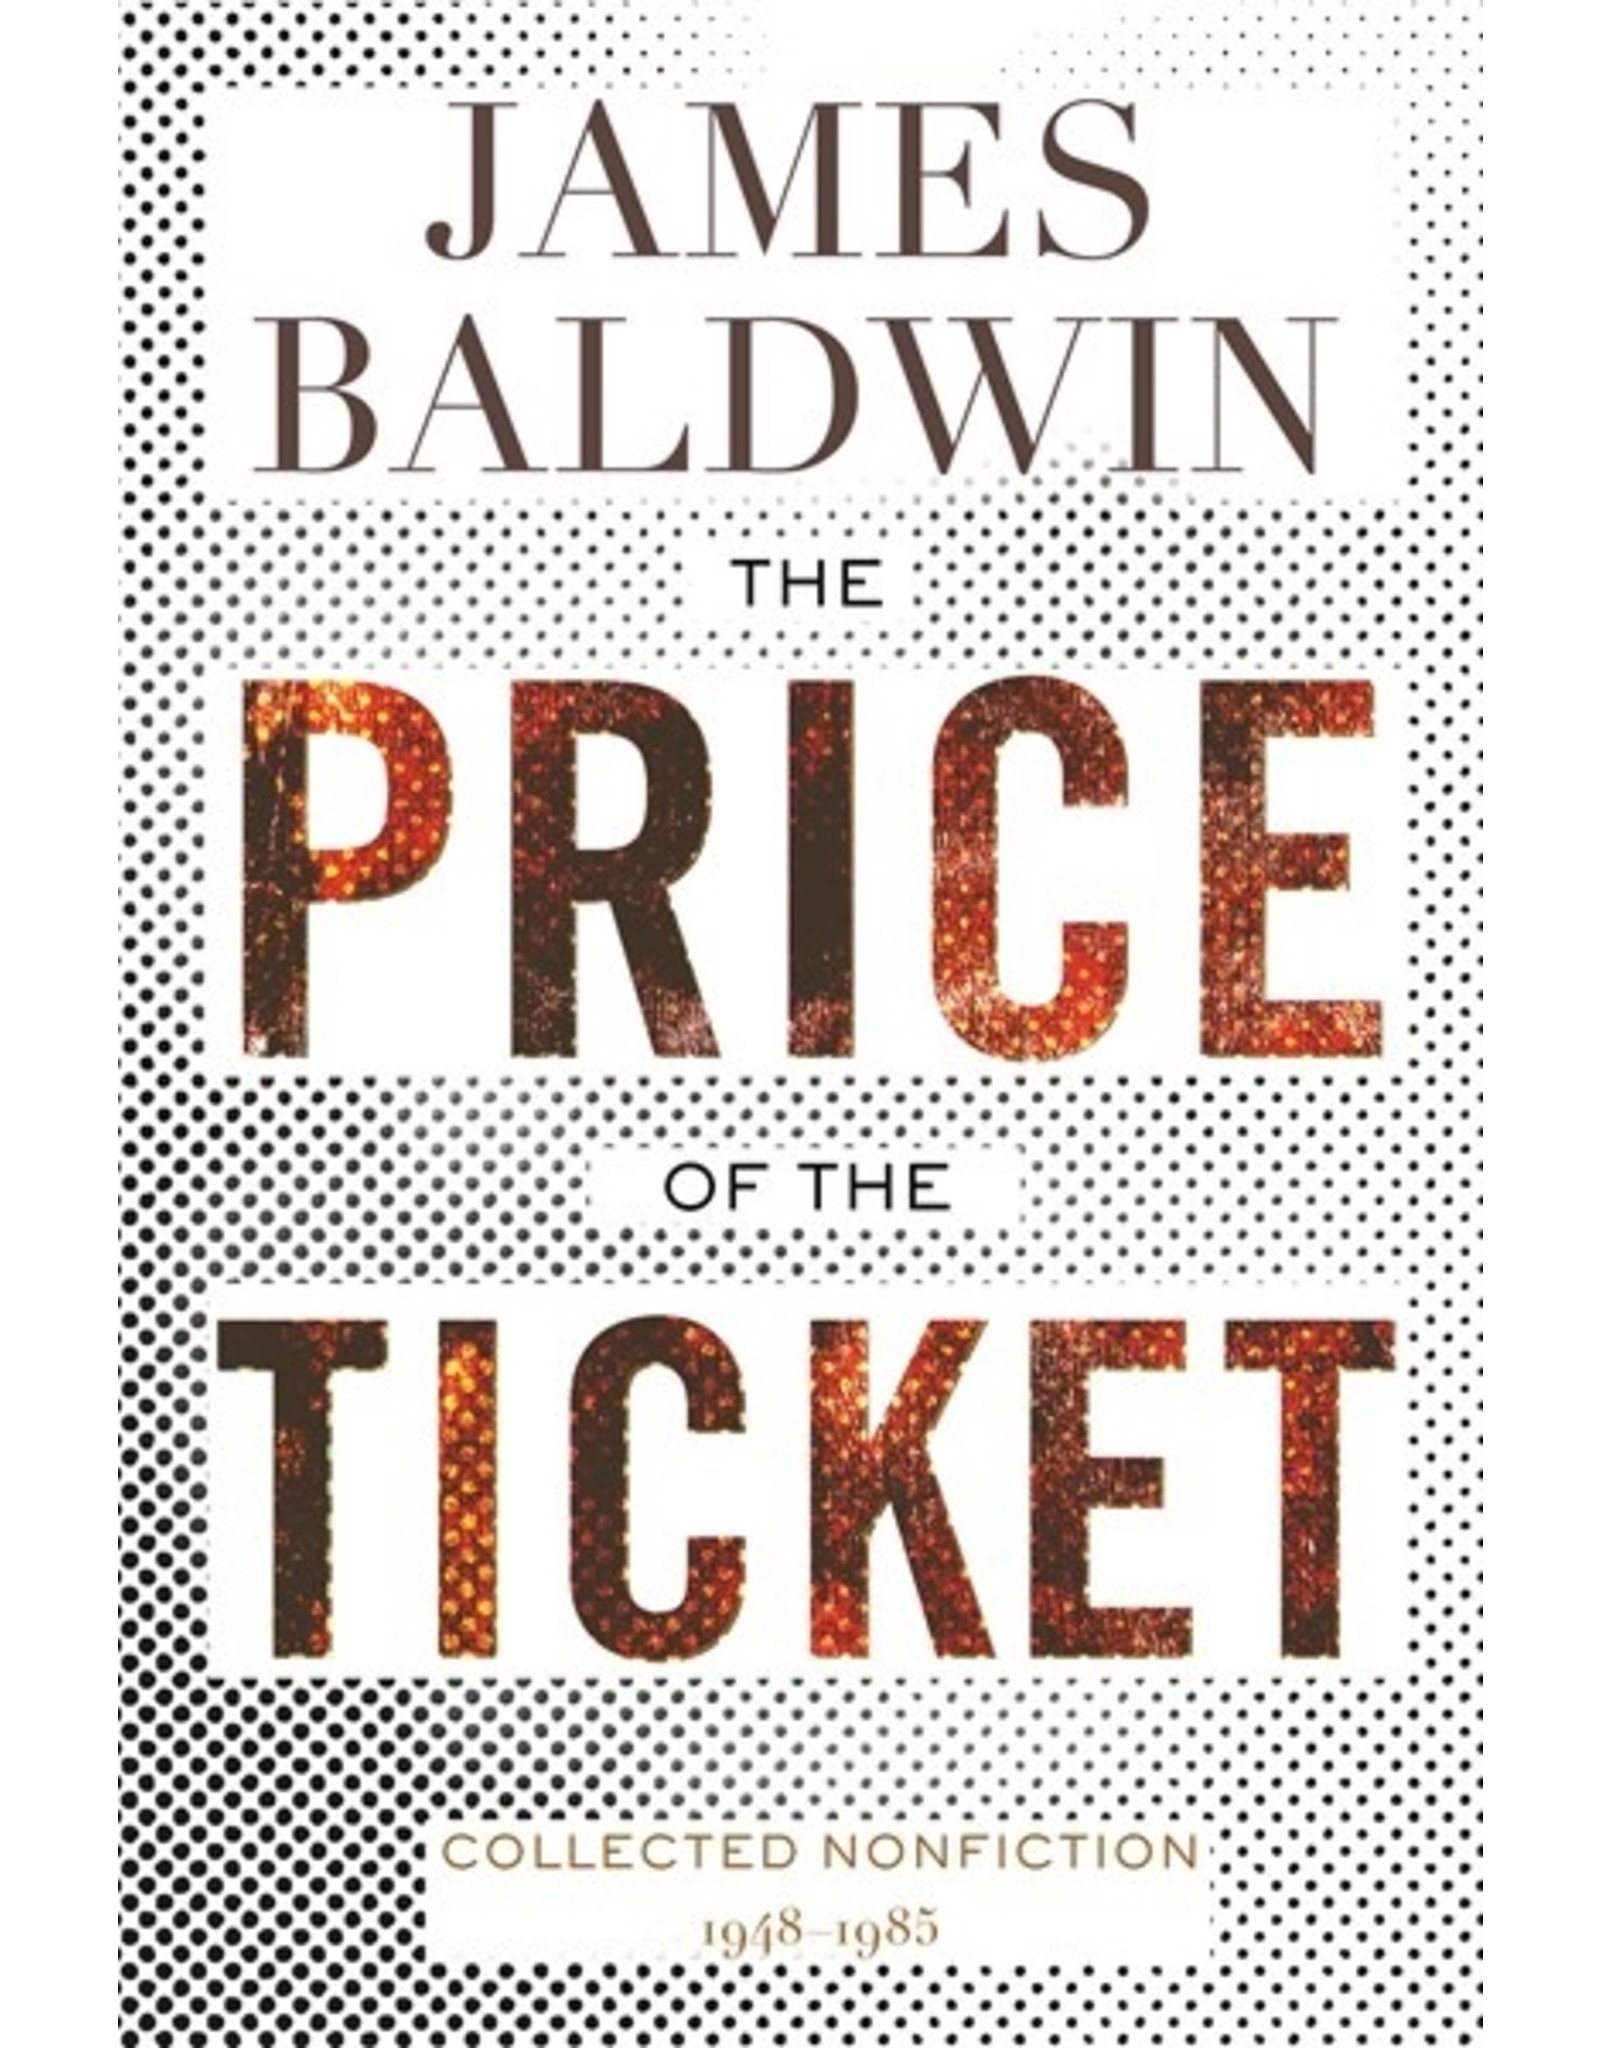 Books The Price of the Ticket : Collected Nonfiction 1948-1985   by James Baldwin